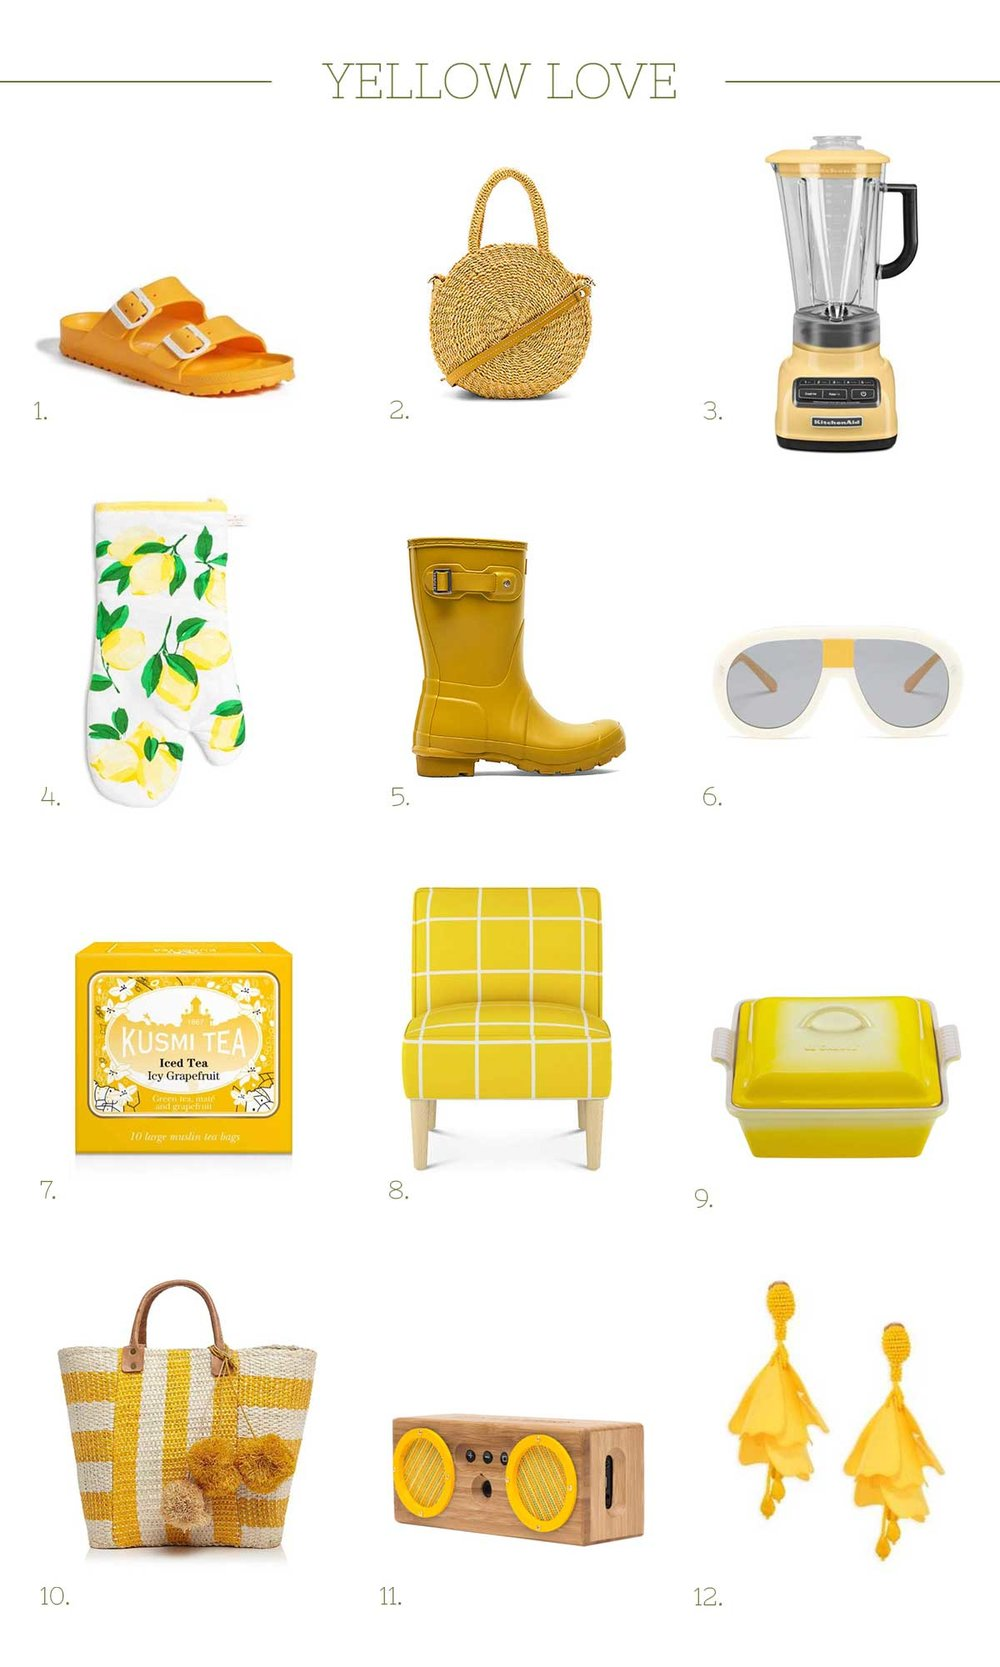 Ali Hedin loves Yellow